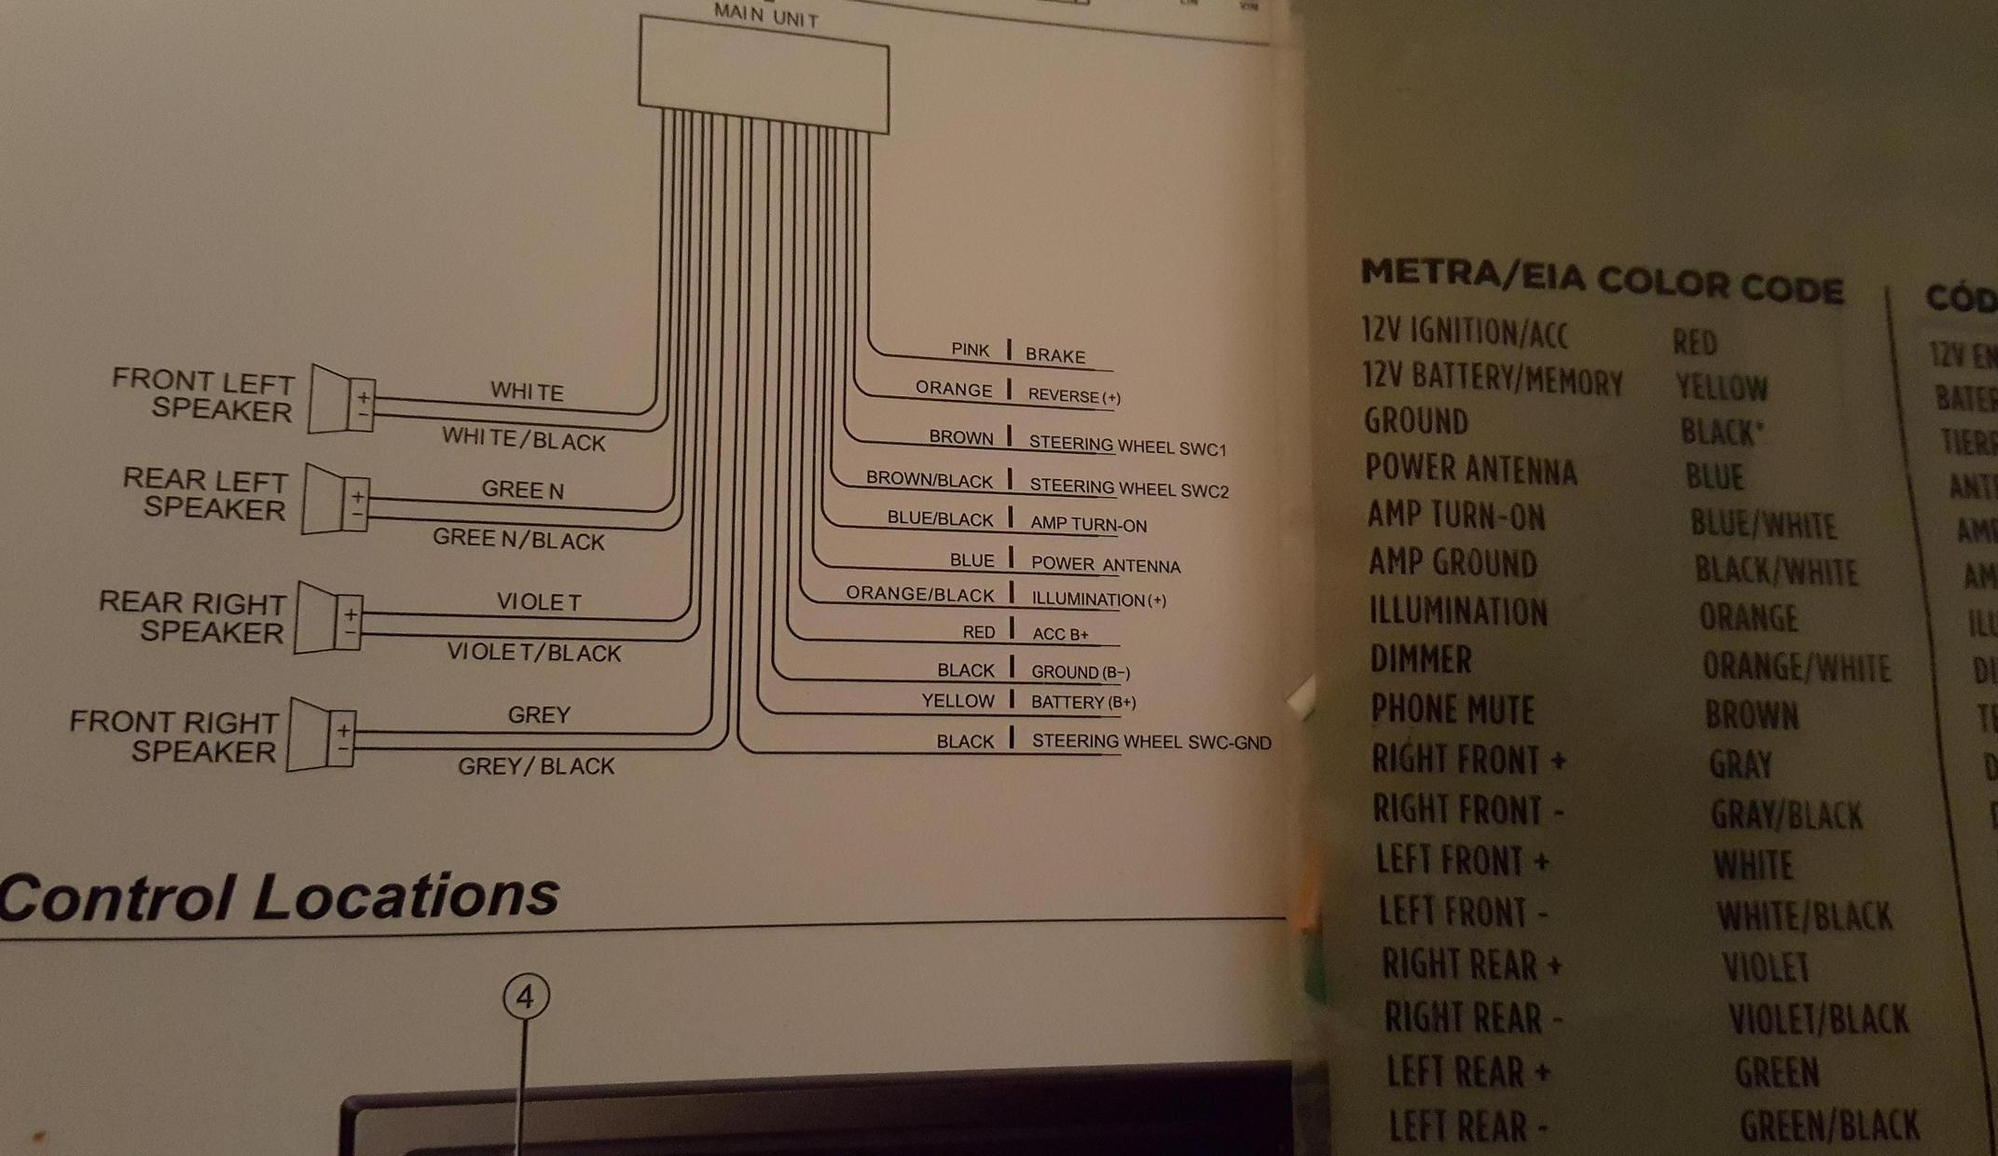 2007 honda civic ex stereo wiring diagram atwood hot water heater 2008 fit colors - honda-tech forum discussion